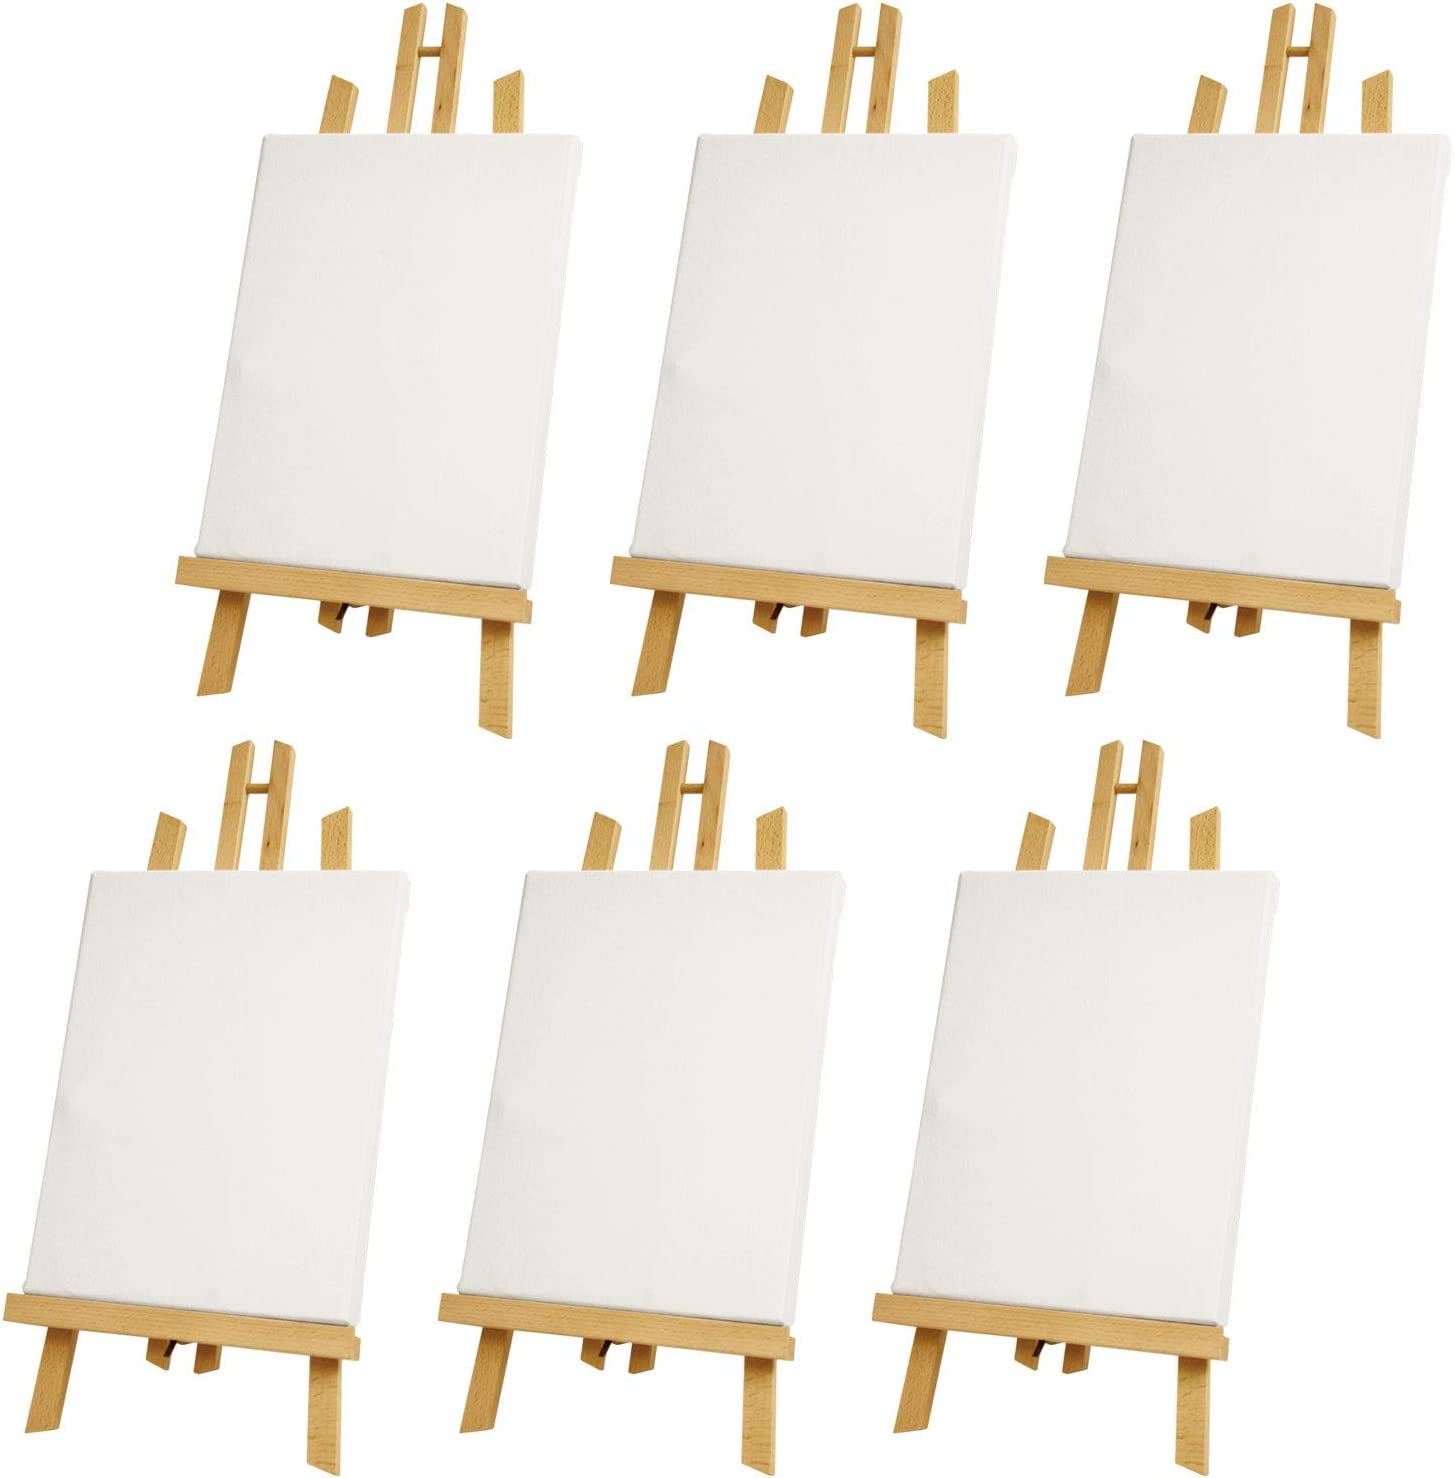 Complete Set of 6 Art Supply 11x14 Stretched Canvas and 18 Natural Wood Table Easel Kit U.S